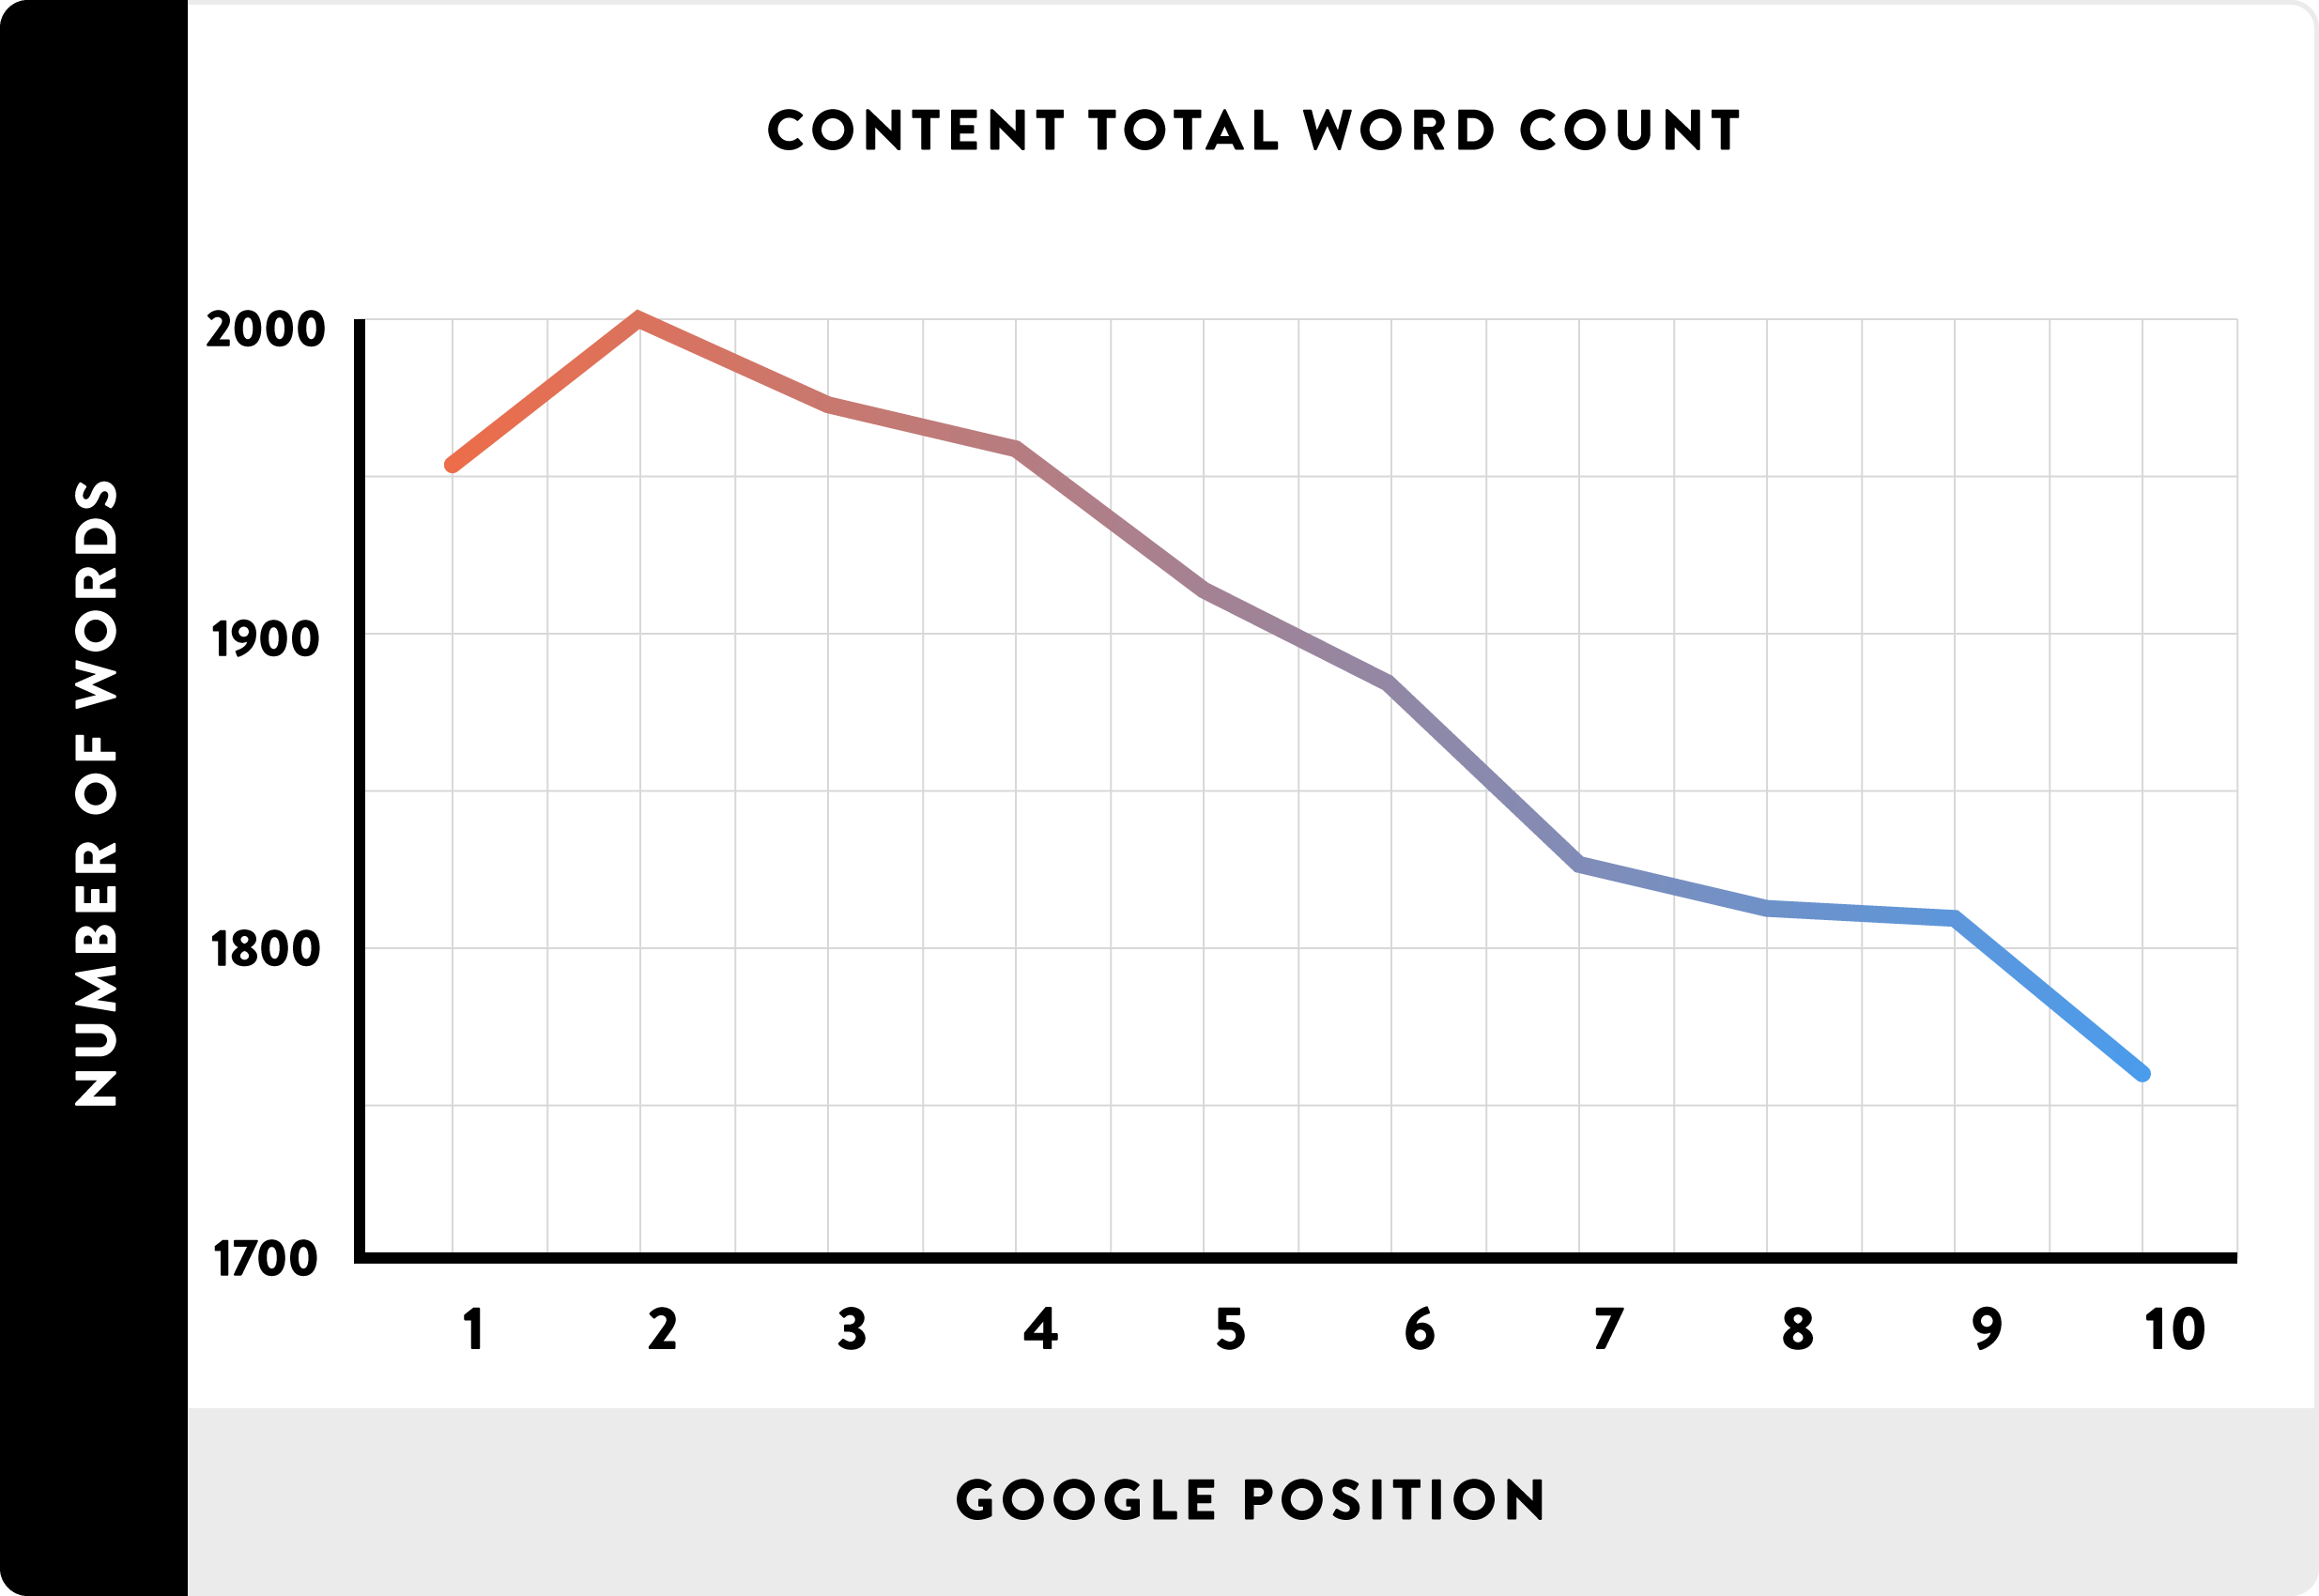 Graph: Article word count and correlation to Google ranking position